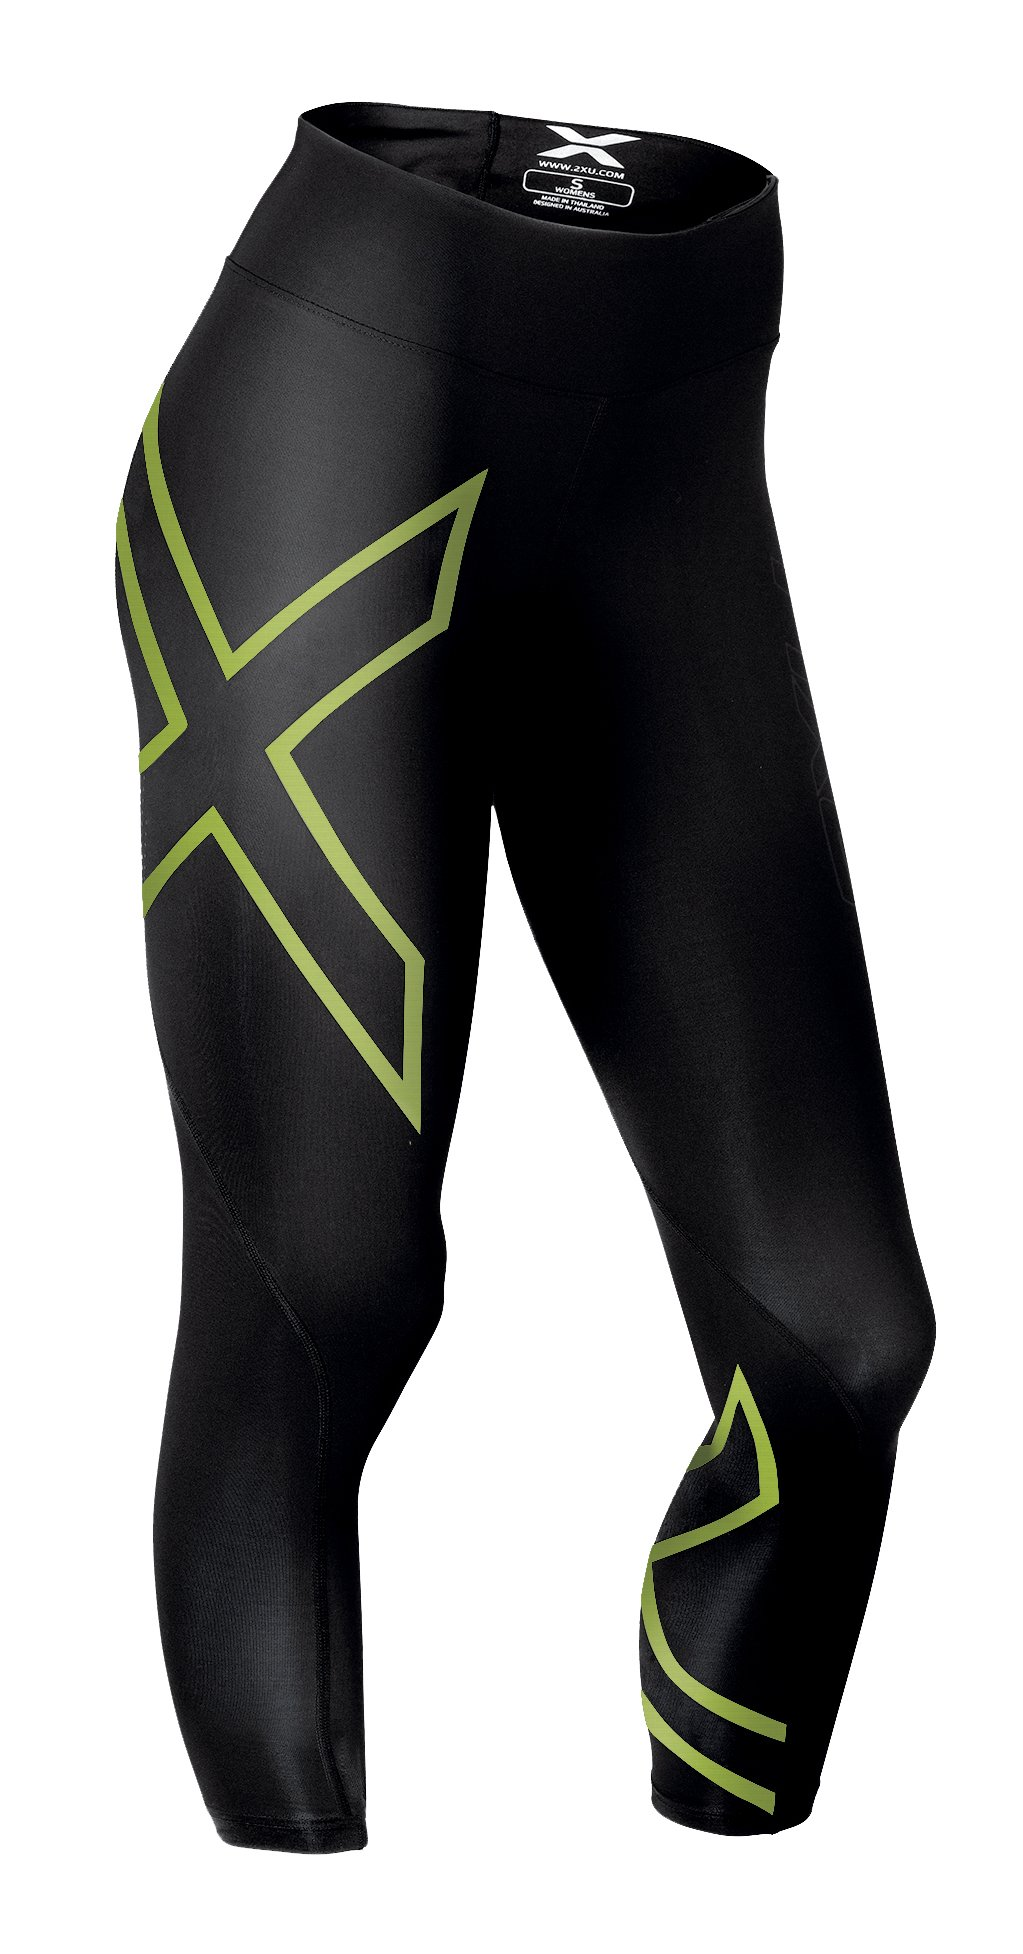 2XU Women's Mid-Rise 7/8 Compression Tights, Black/Bright Green, Small by 2XU (Image #1)